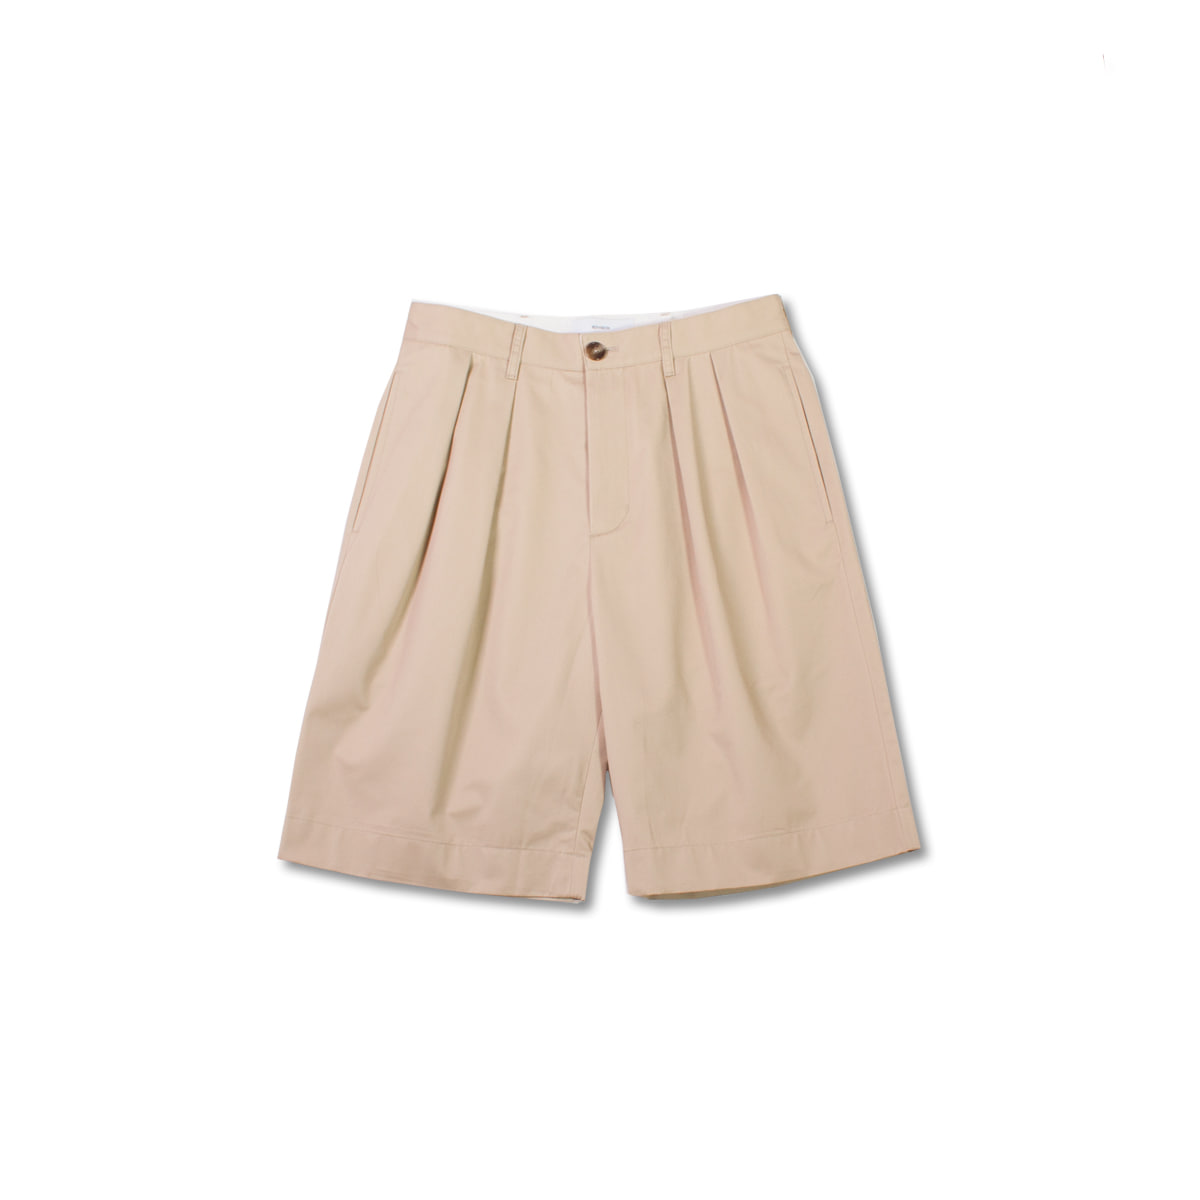 [8DIVISION] WIDE CHINO SHORTS 'BEIGE'